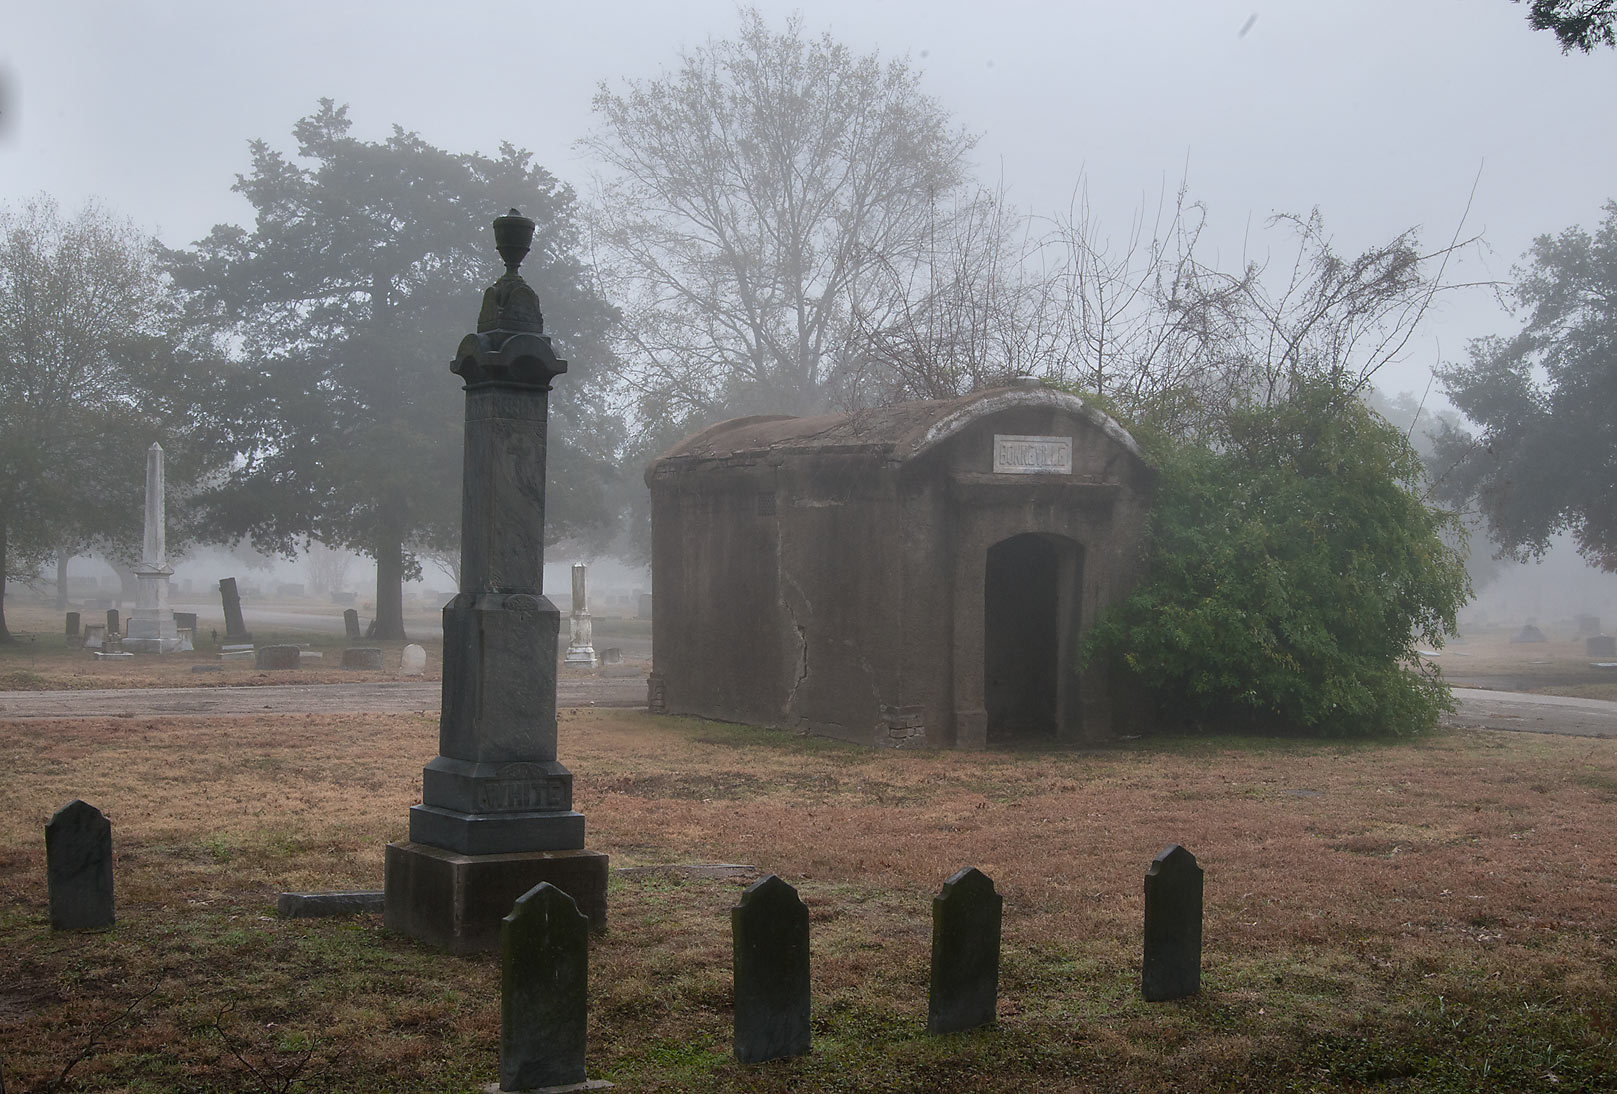 Crypt in City Cemetery in fog. Bryan, Texas